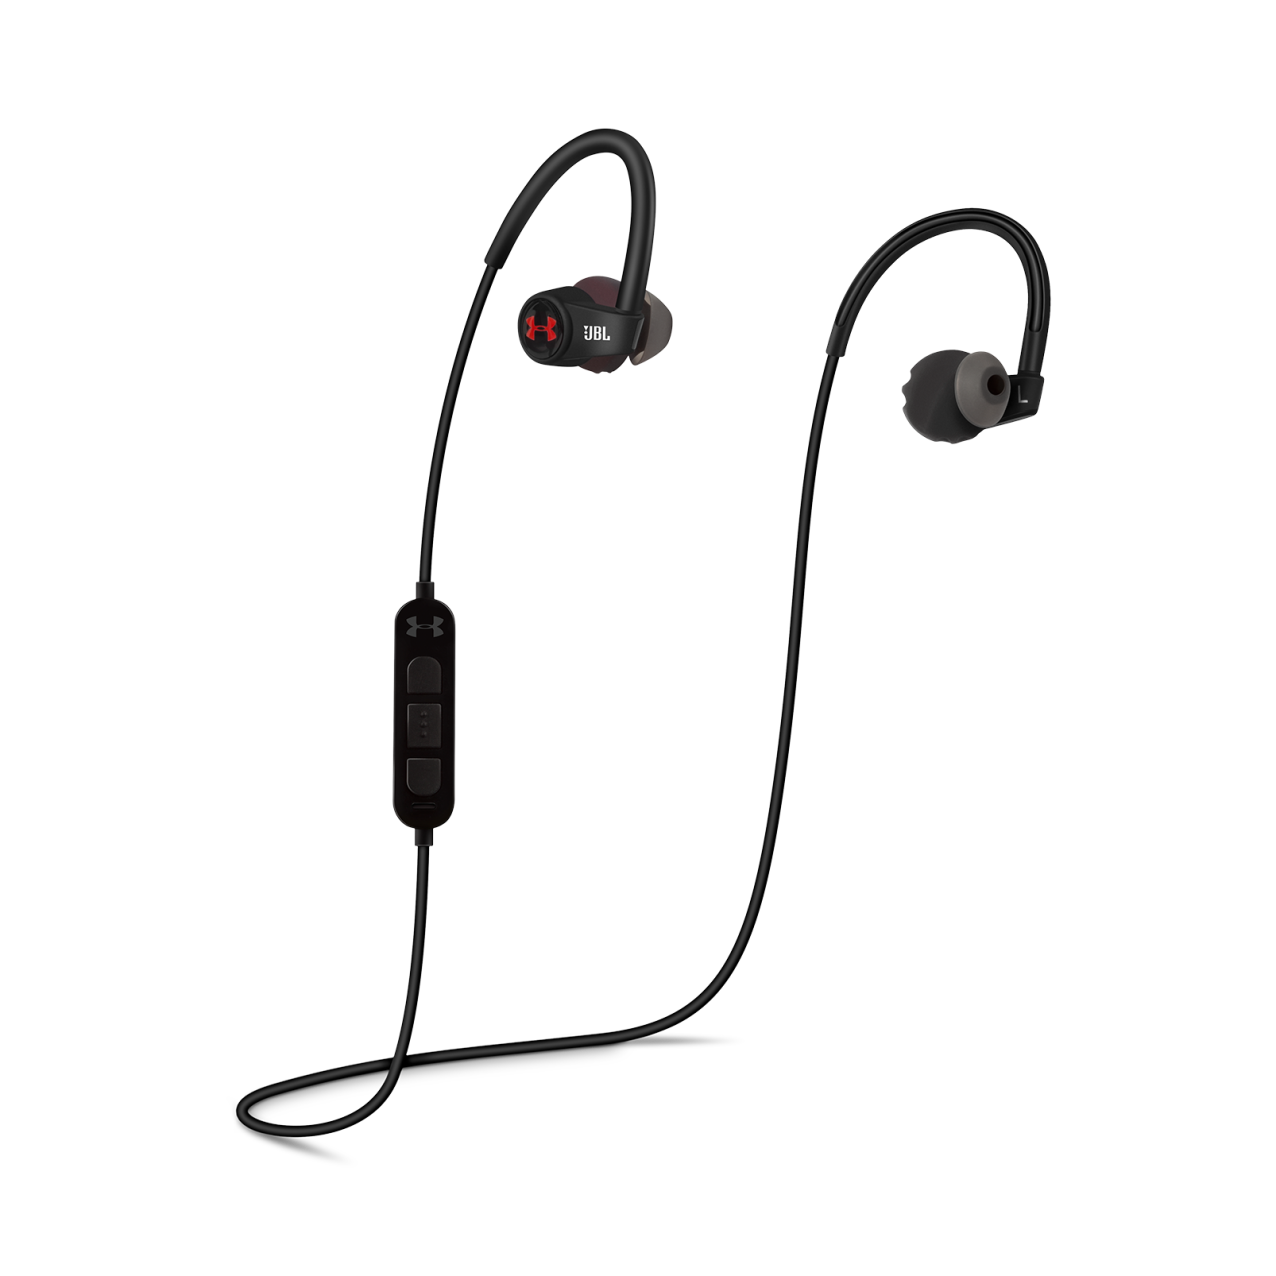 ua-heart-rate-headphones-frontback-1606x1606px